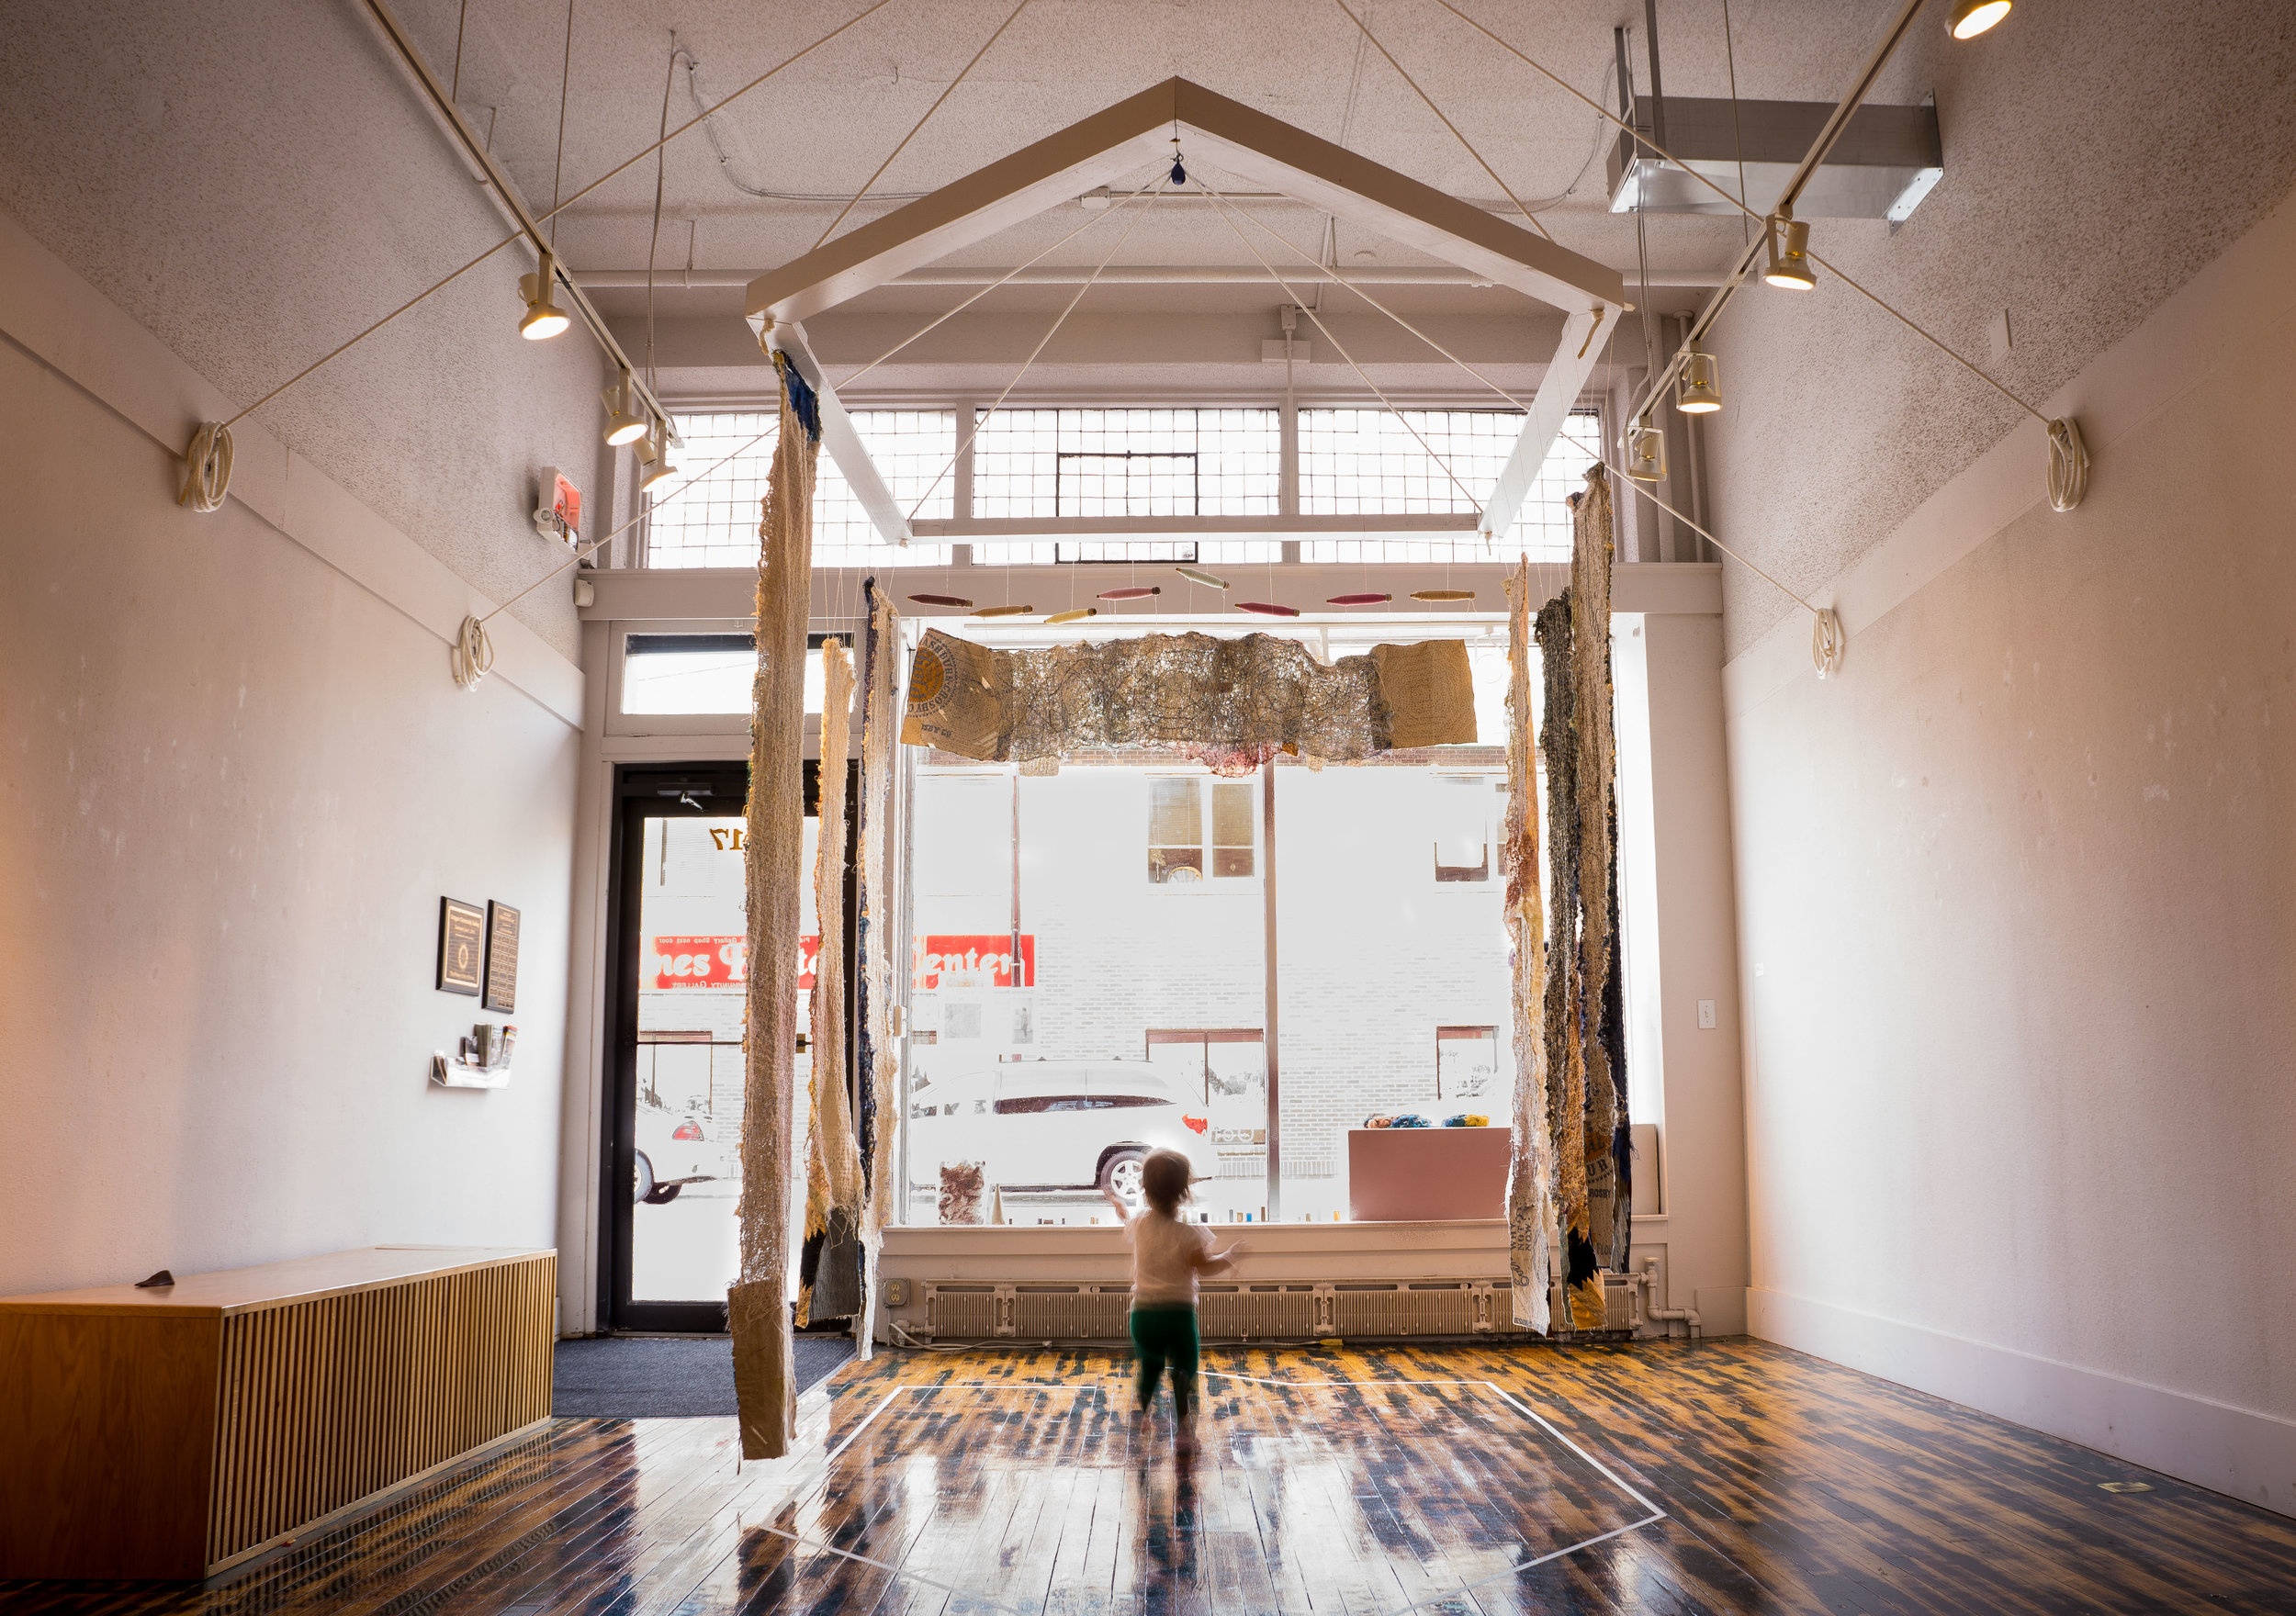 home[maker], 2014, Octagon Center for the Arts Community Gallery, Ames, IA.